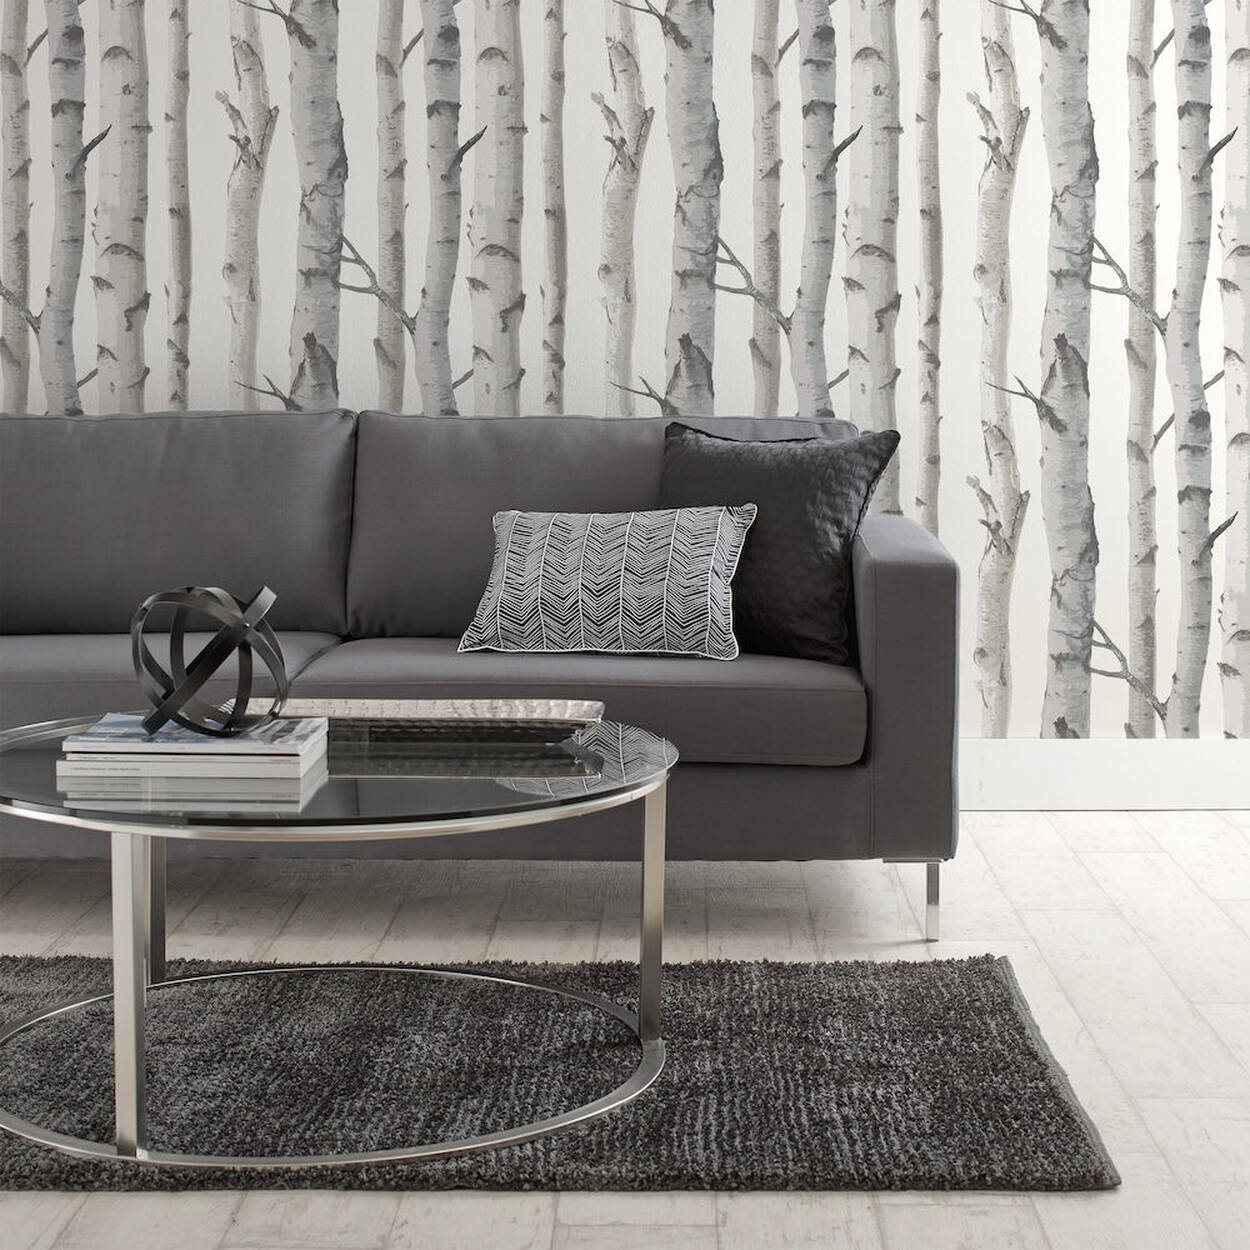 Birch Trees Wallpaper Double Roll Bouclair Com